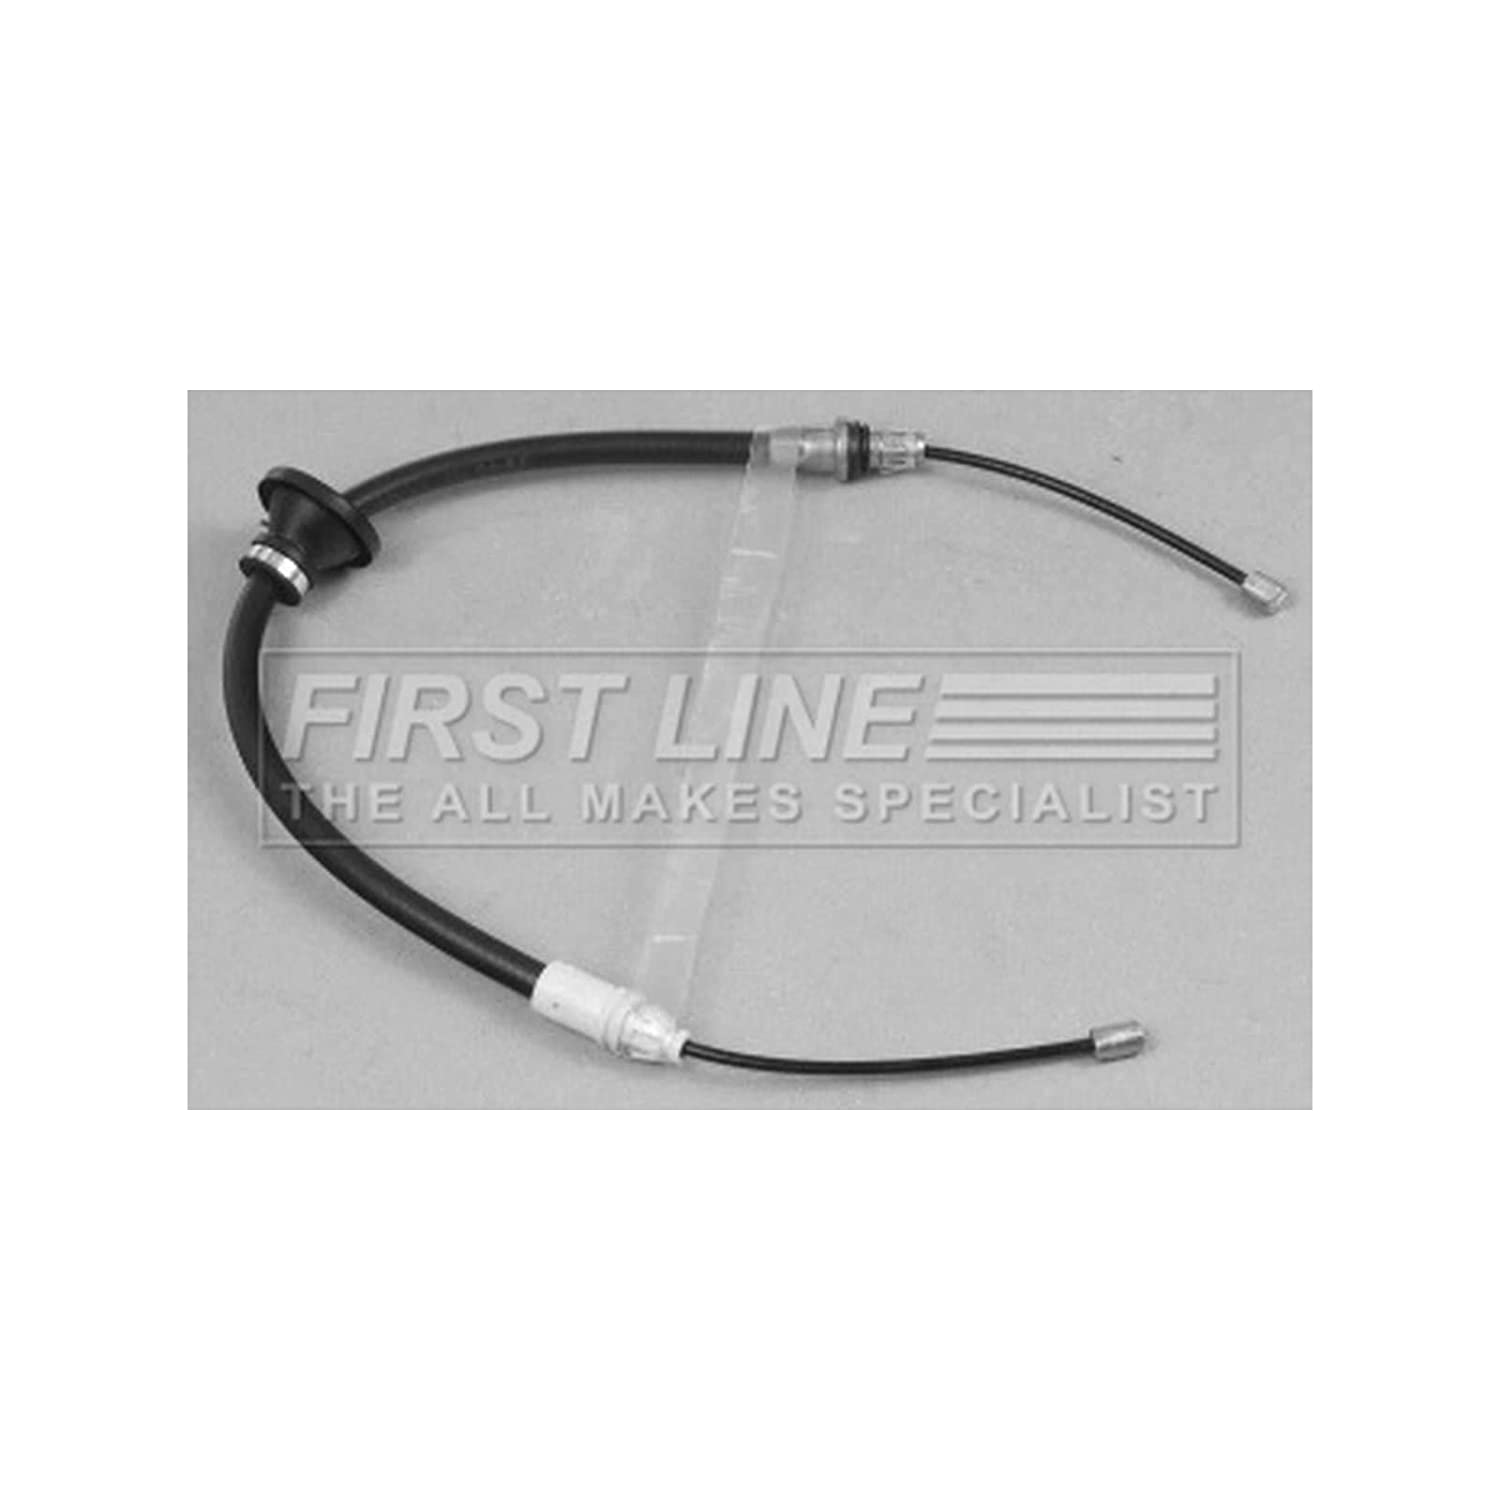 First Line FKB2773 Parking Brake Cable First Line Ltd